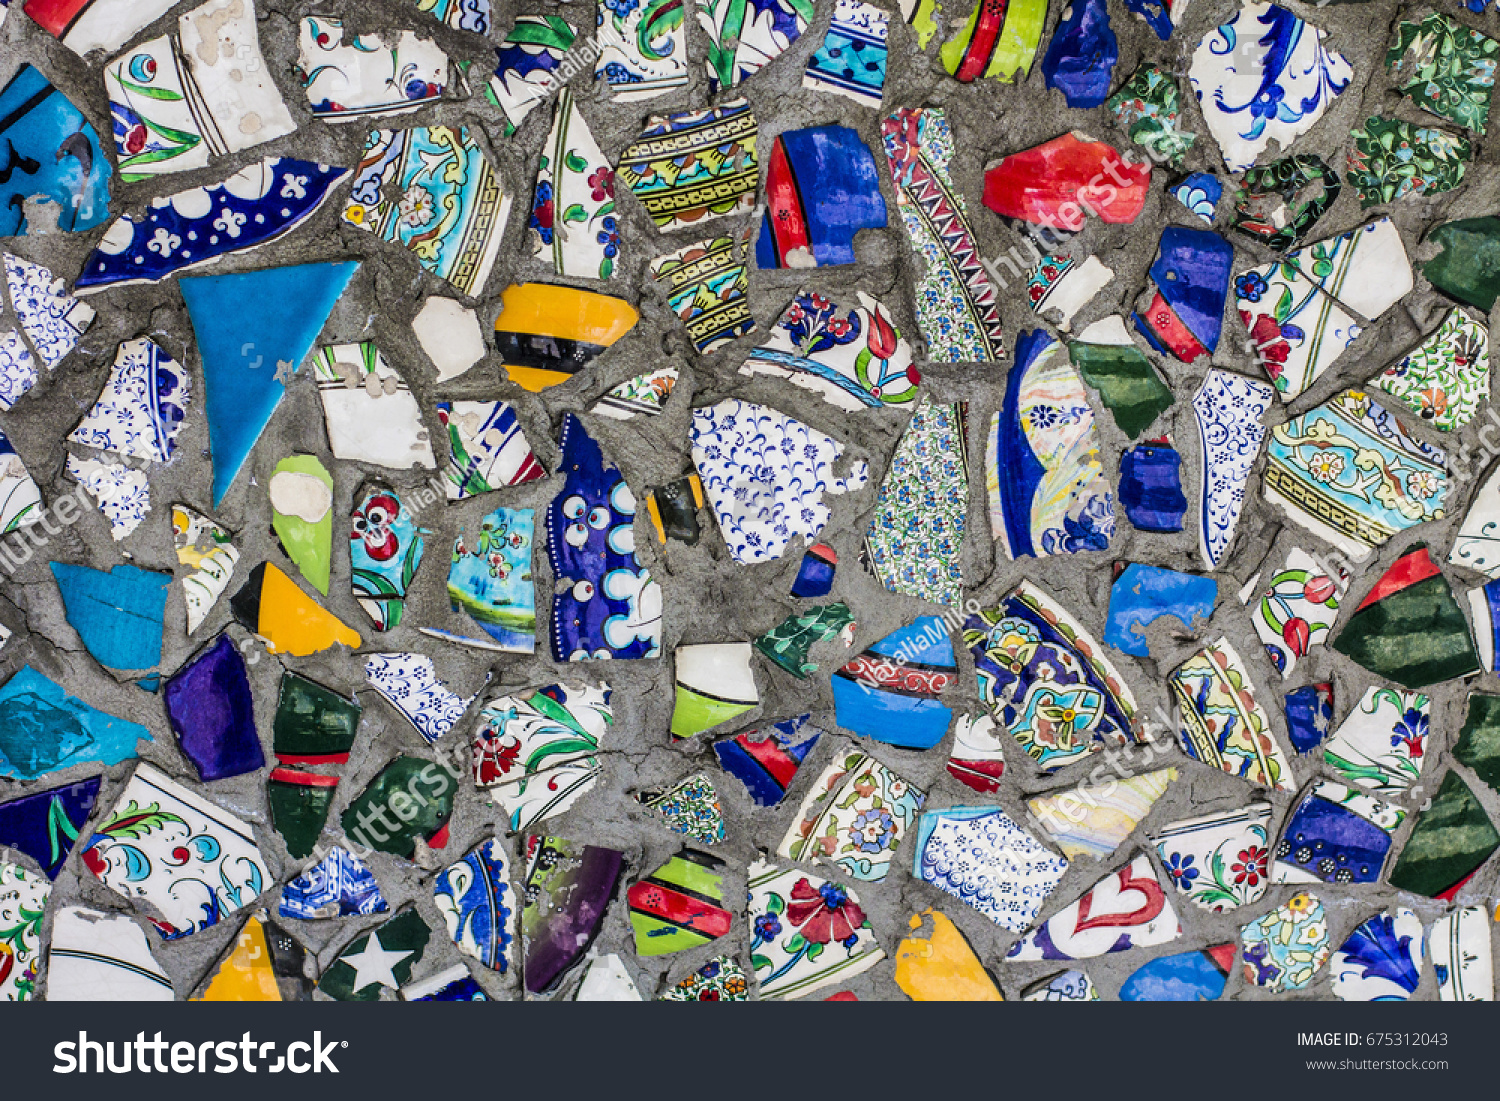 Mosaic broken ceramic tiles on wall stock photo royalty free mosaic of broken ceramic tiles on the wall of the building in istanbul center turkey dailygadgetfo Images